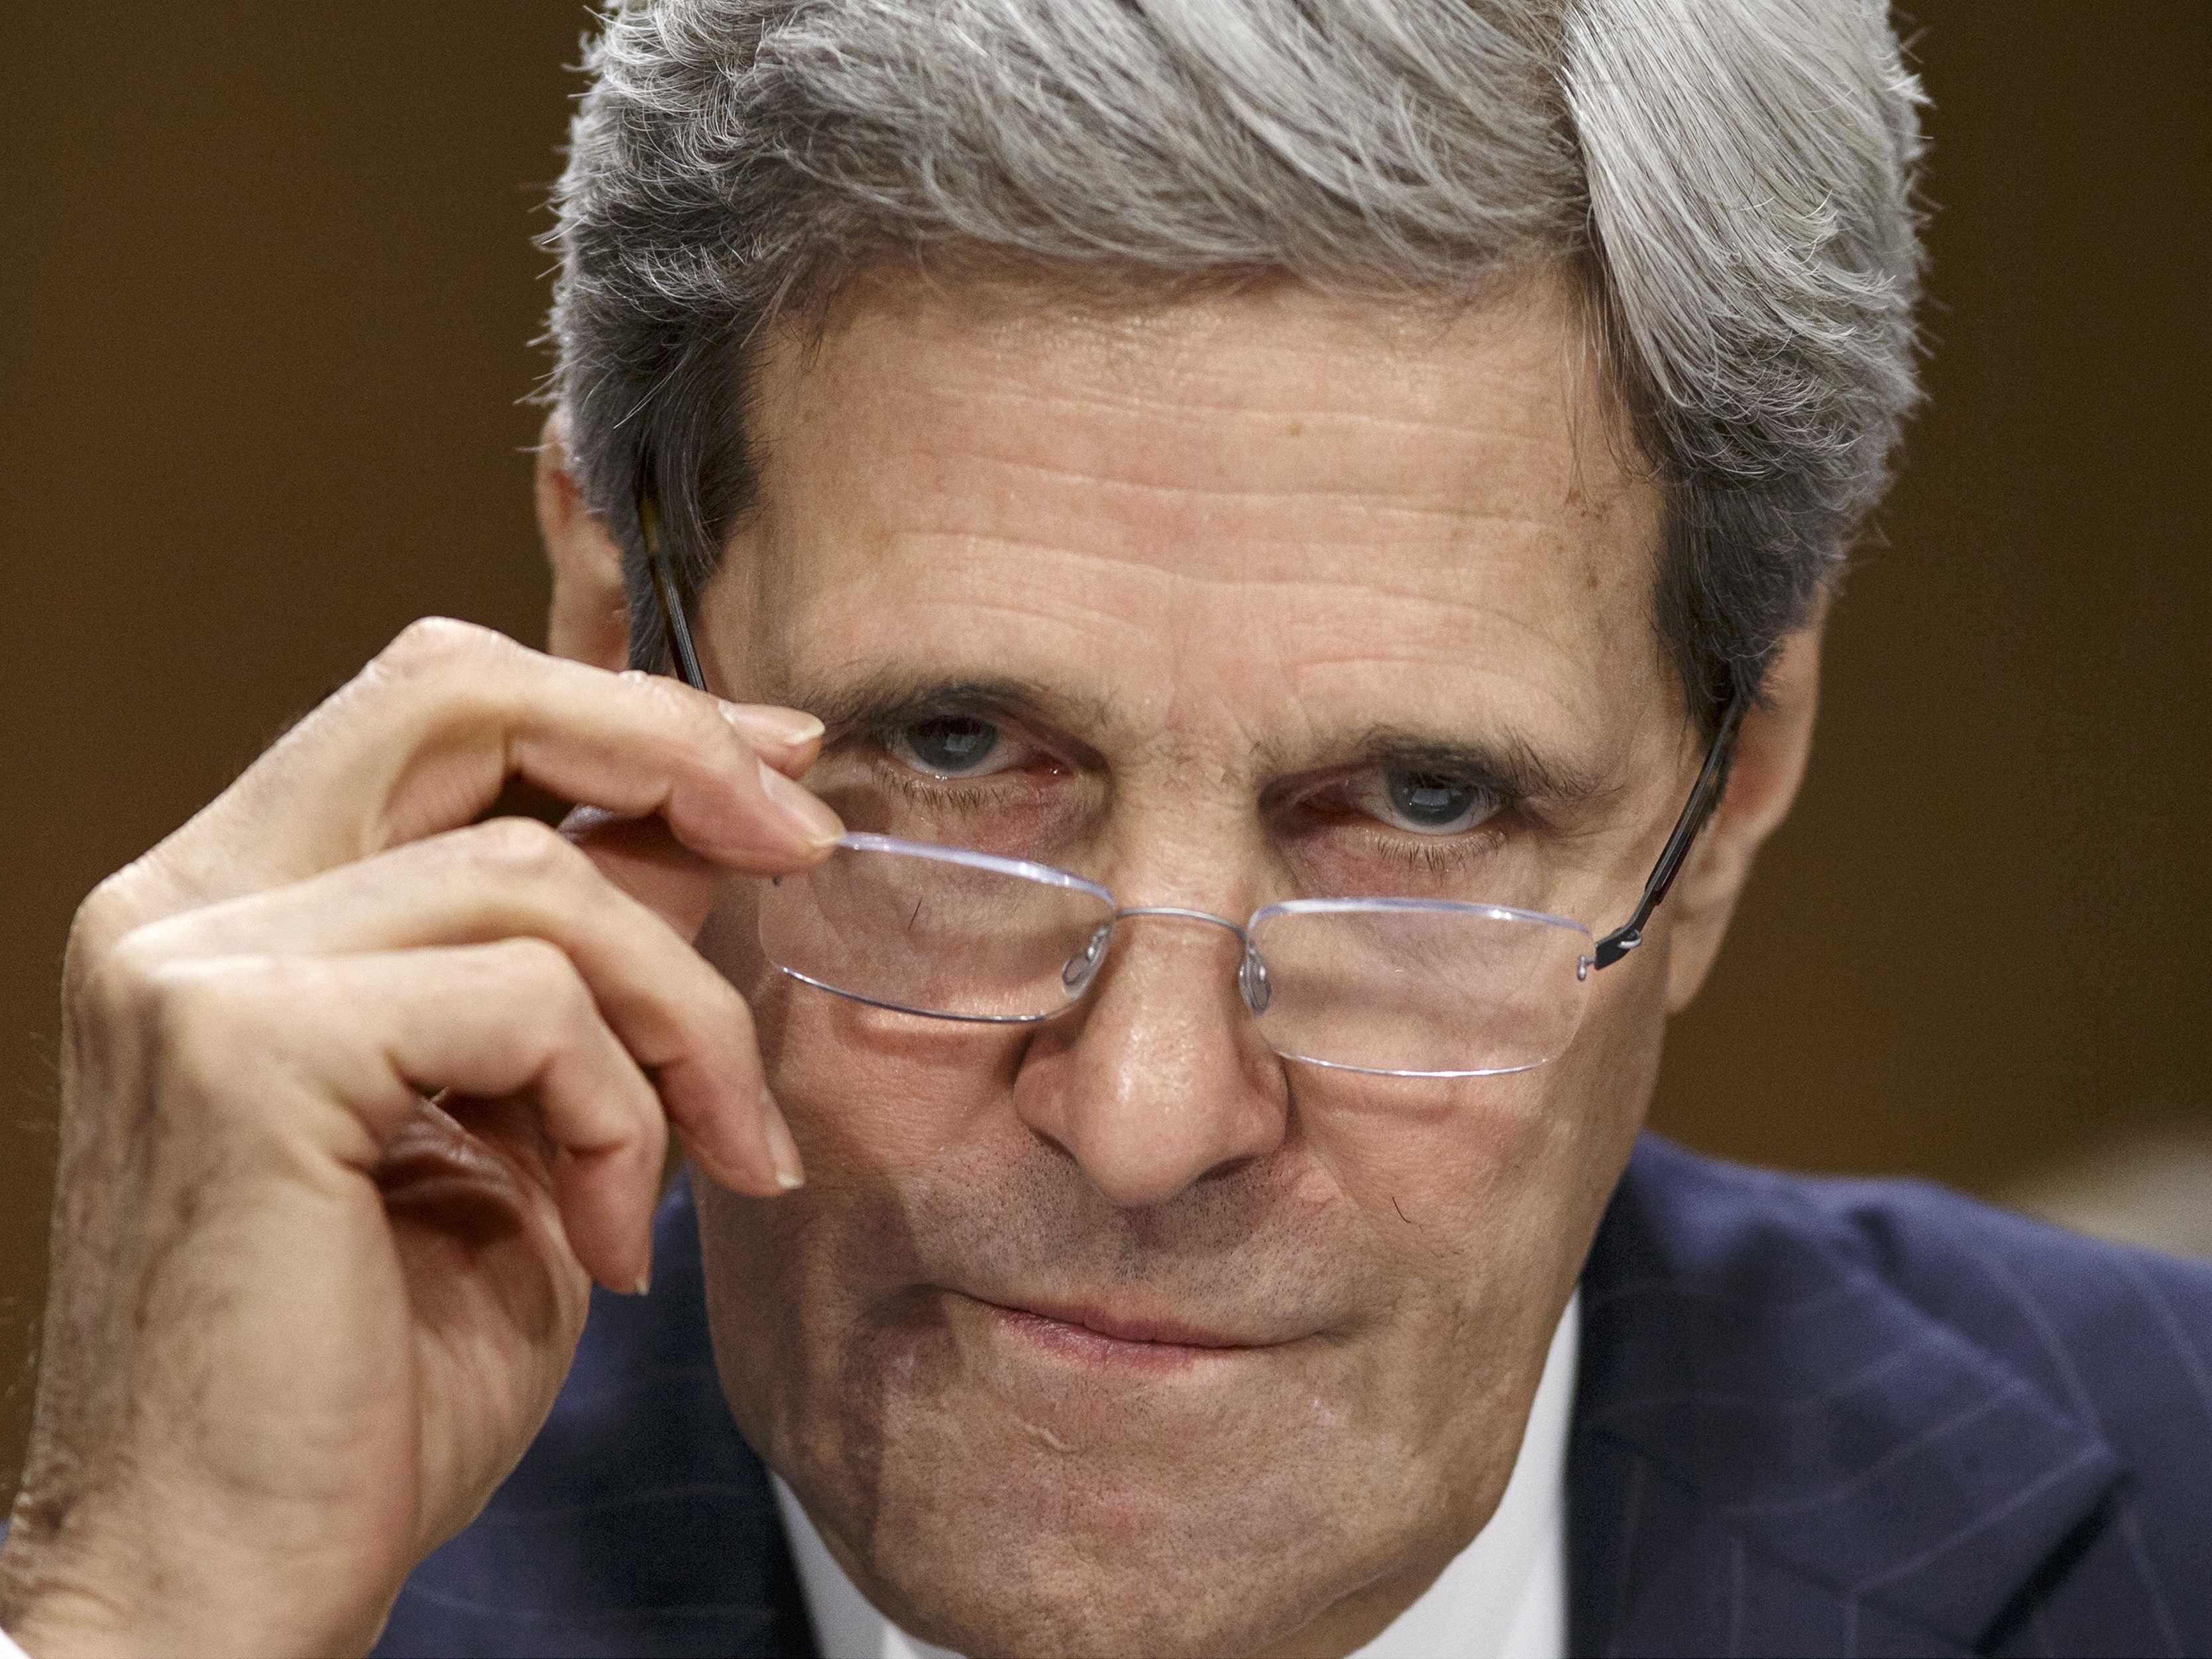 John Kerry blustering and warning Russia